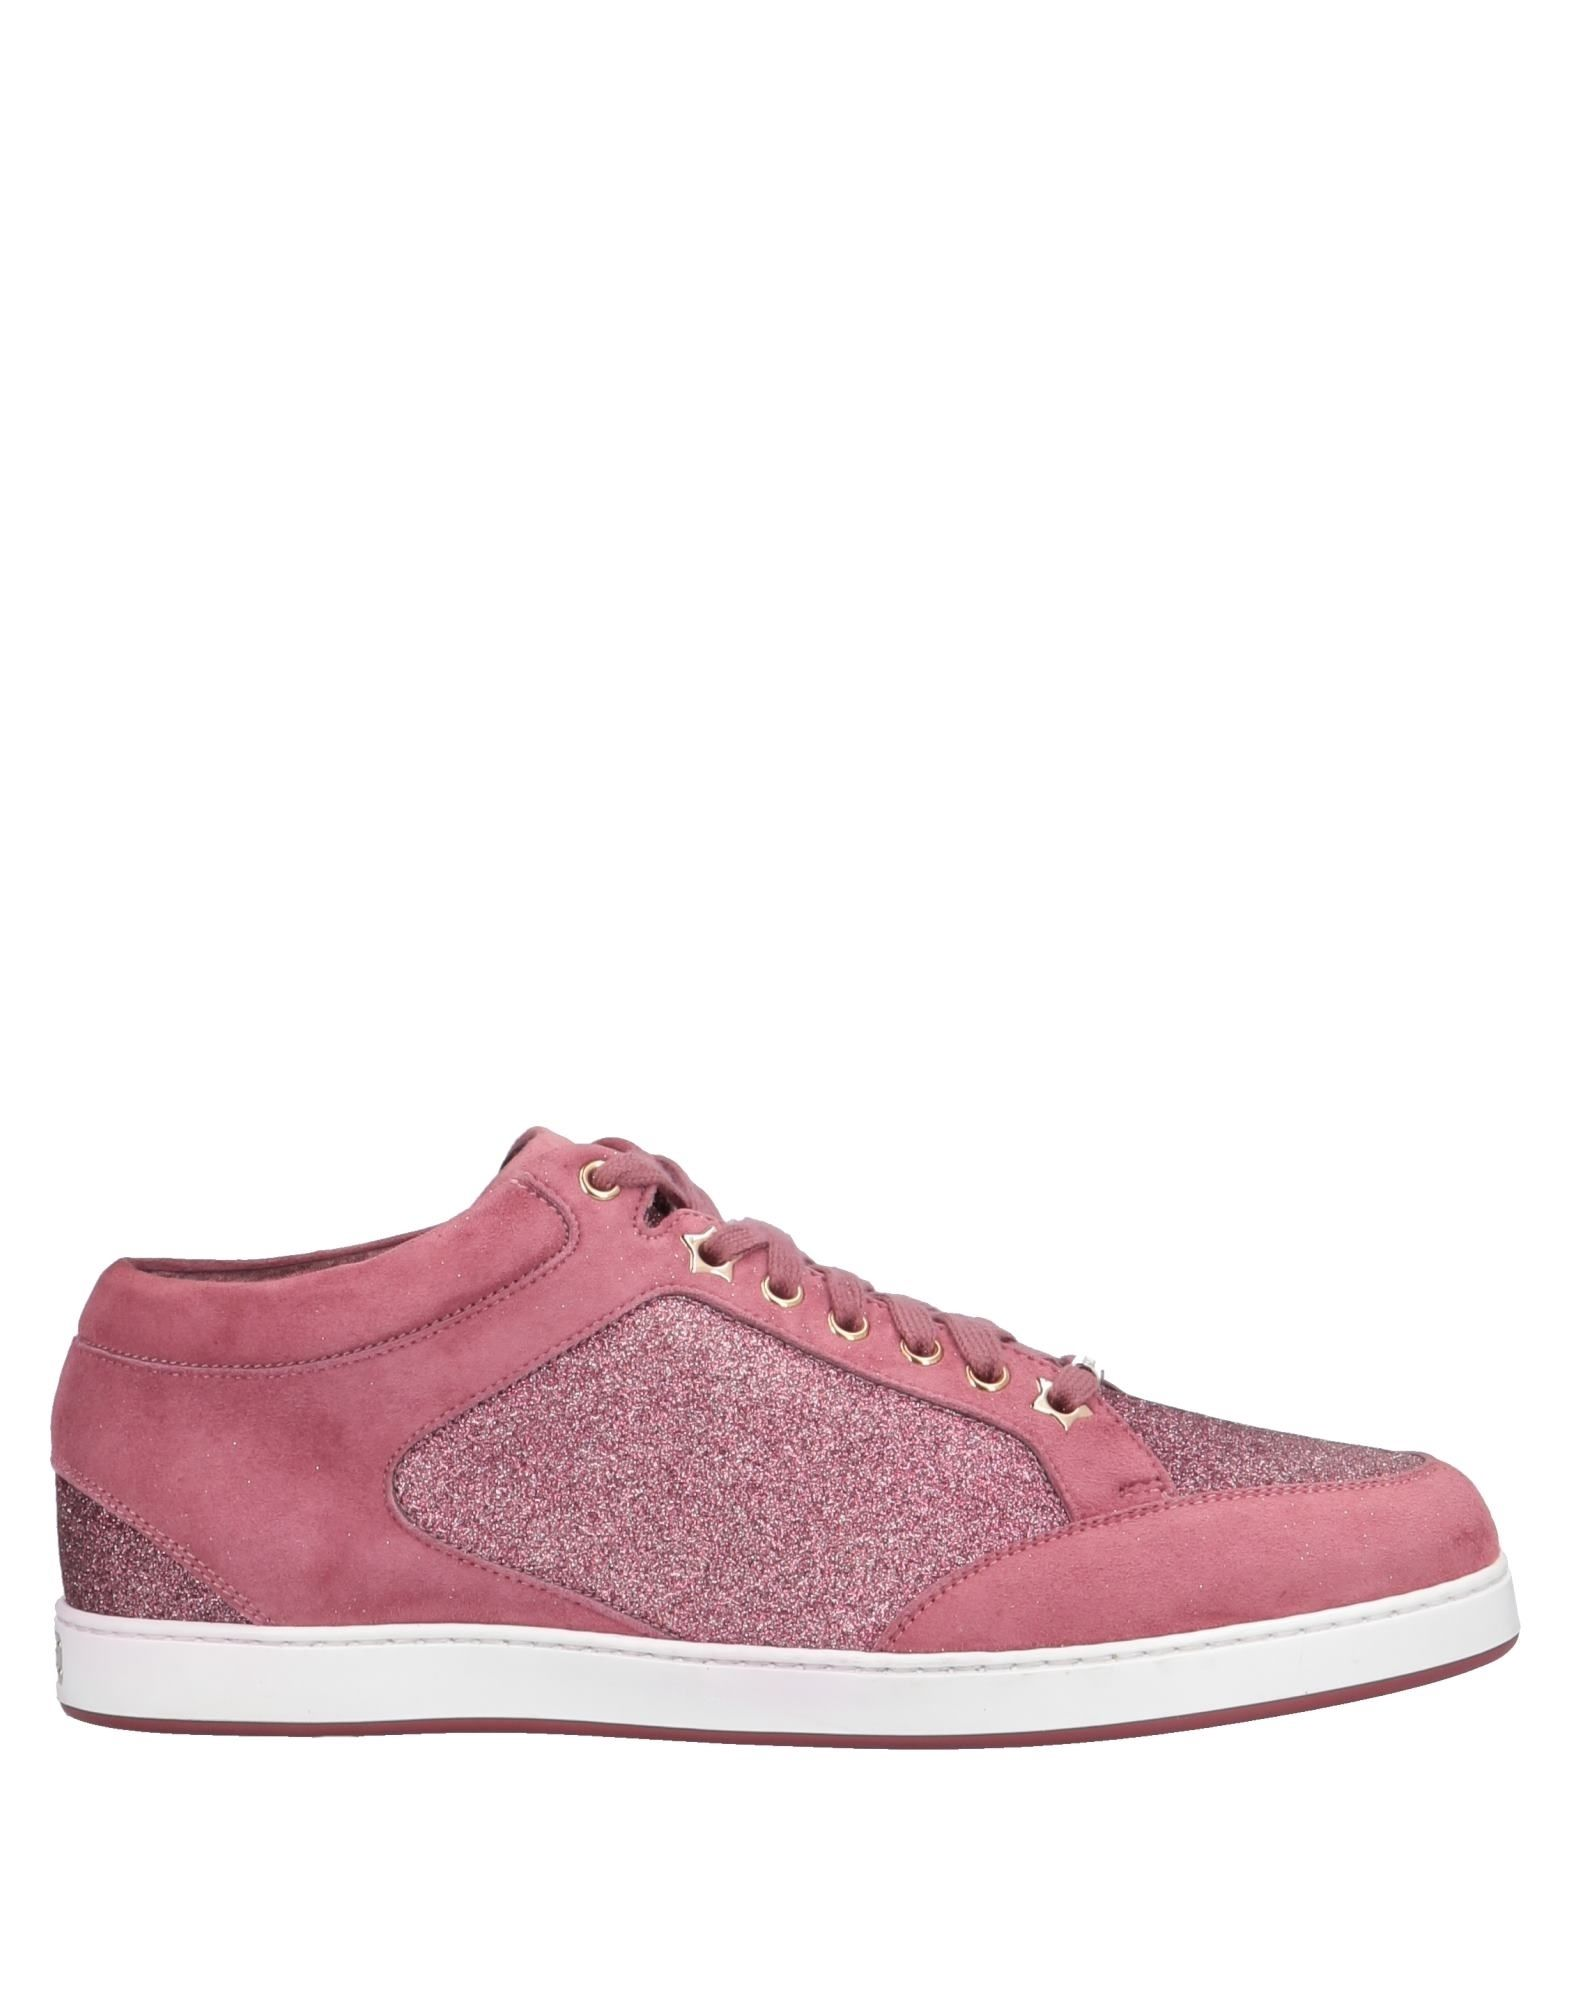 Jimmy Choo Sneakers - Women Jimmy Choo Sneakers - online on  Canada - Sneakers 11558352XQ 3d1999